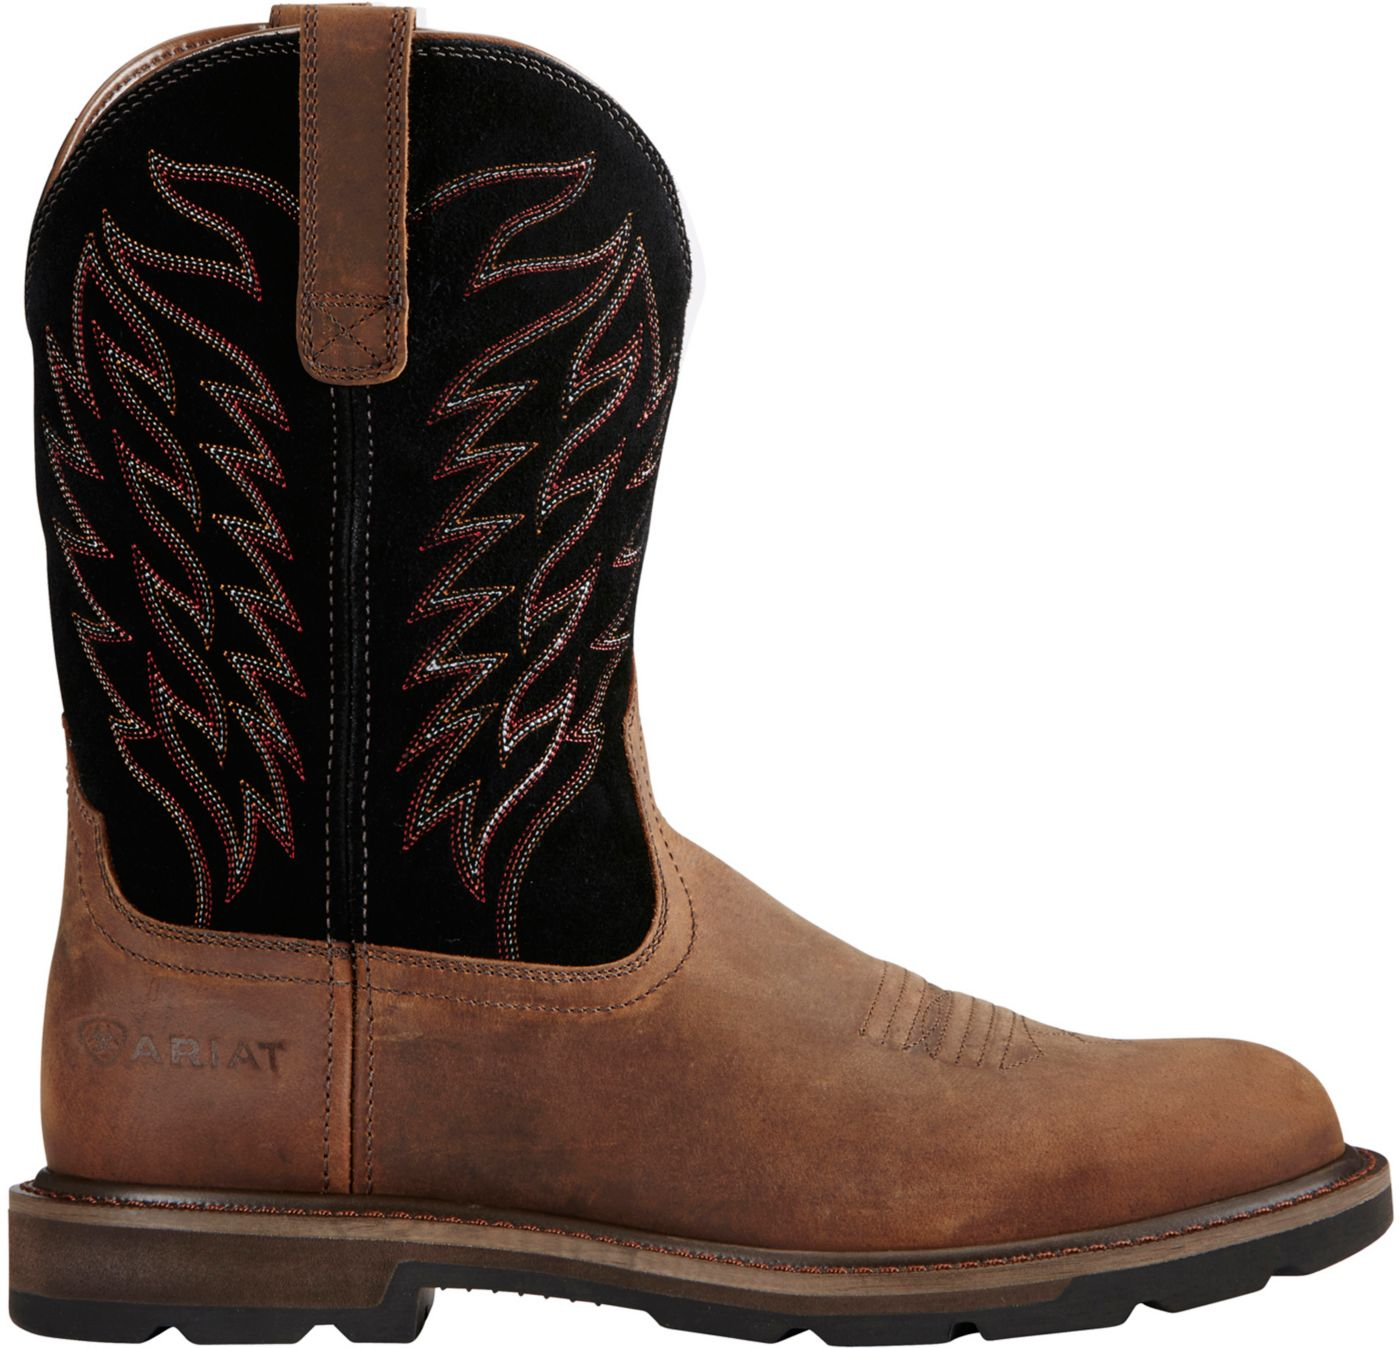 Ariat Men's Groundbreaker Steel Toe Work Boots